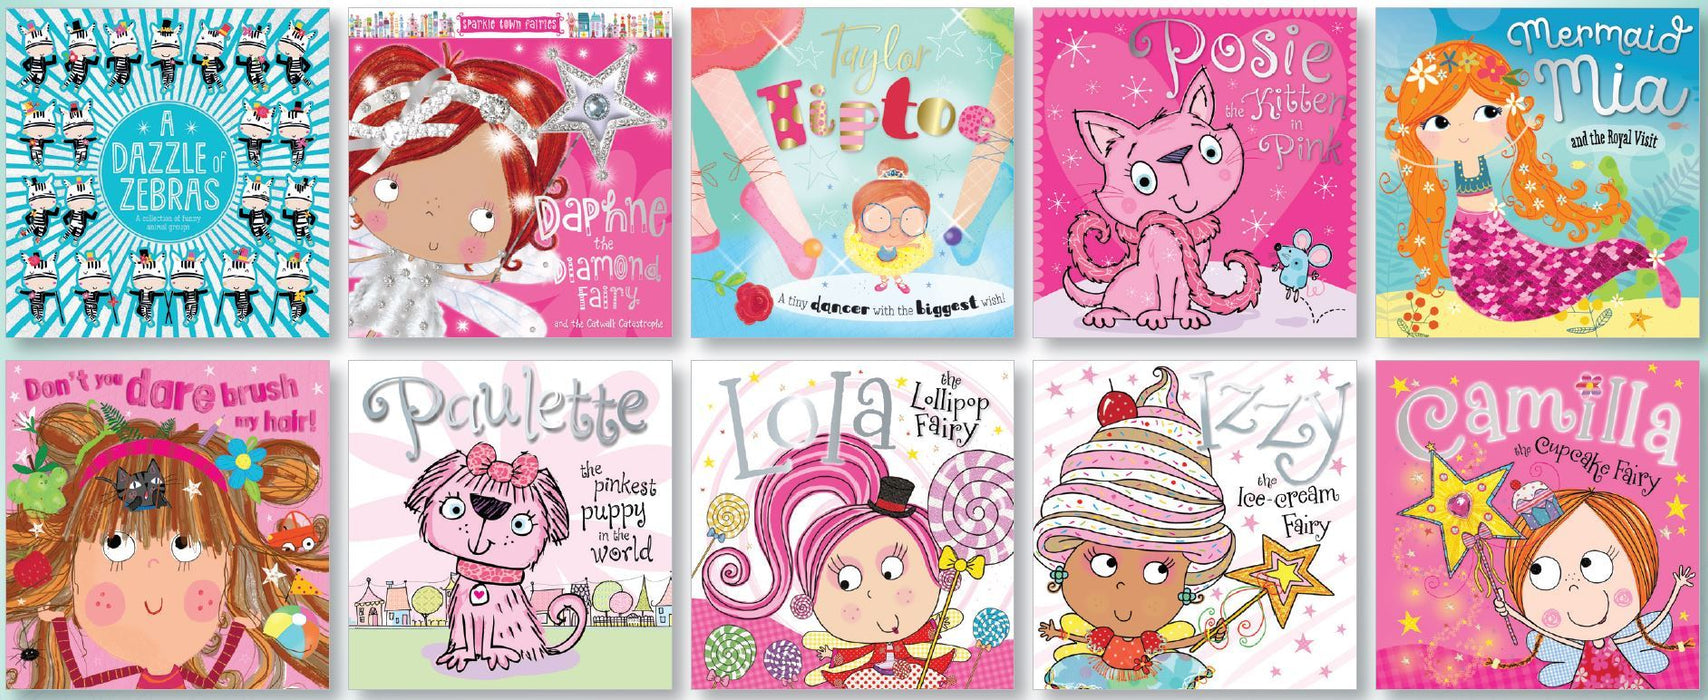 5-7 - The Magical Storytime Collection 10 Books - Paperback - Age 5-7